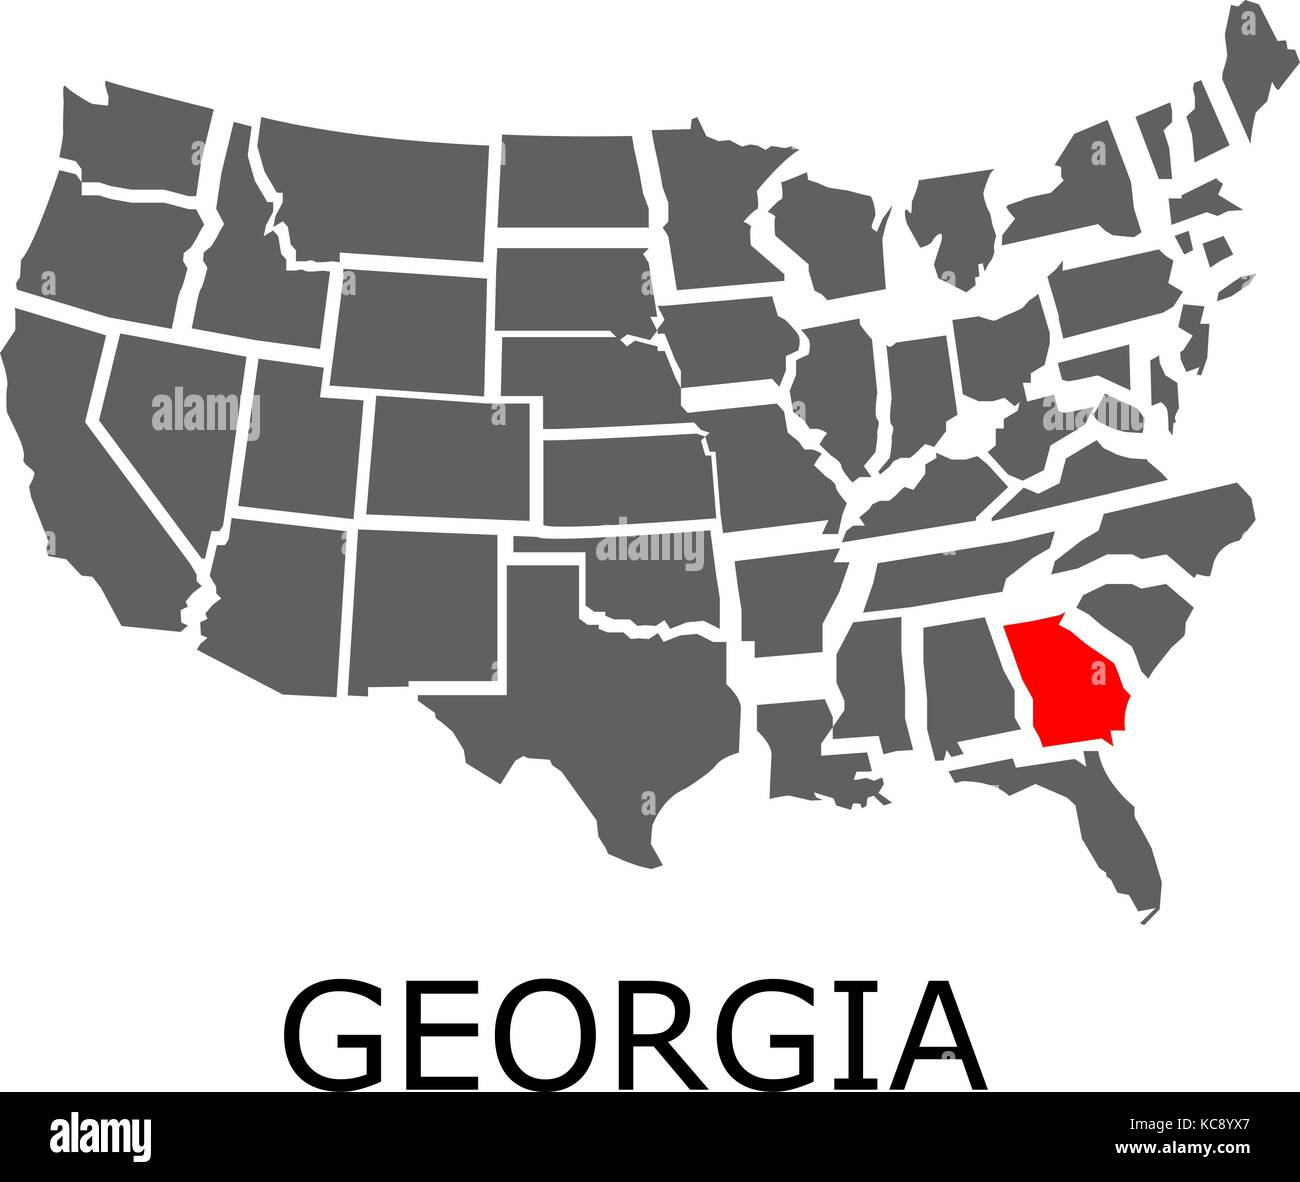 Map Of State Of Georgia Usa.Bordering Geographical Map Of Usa With State Of Georgia Marked With